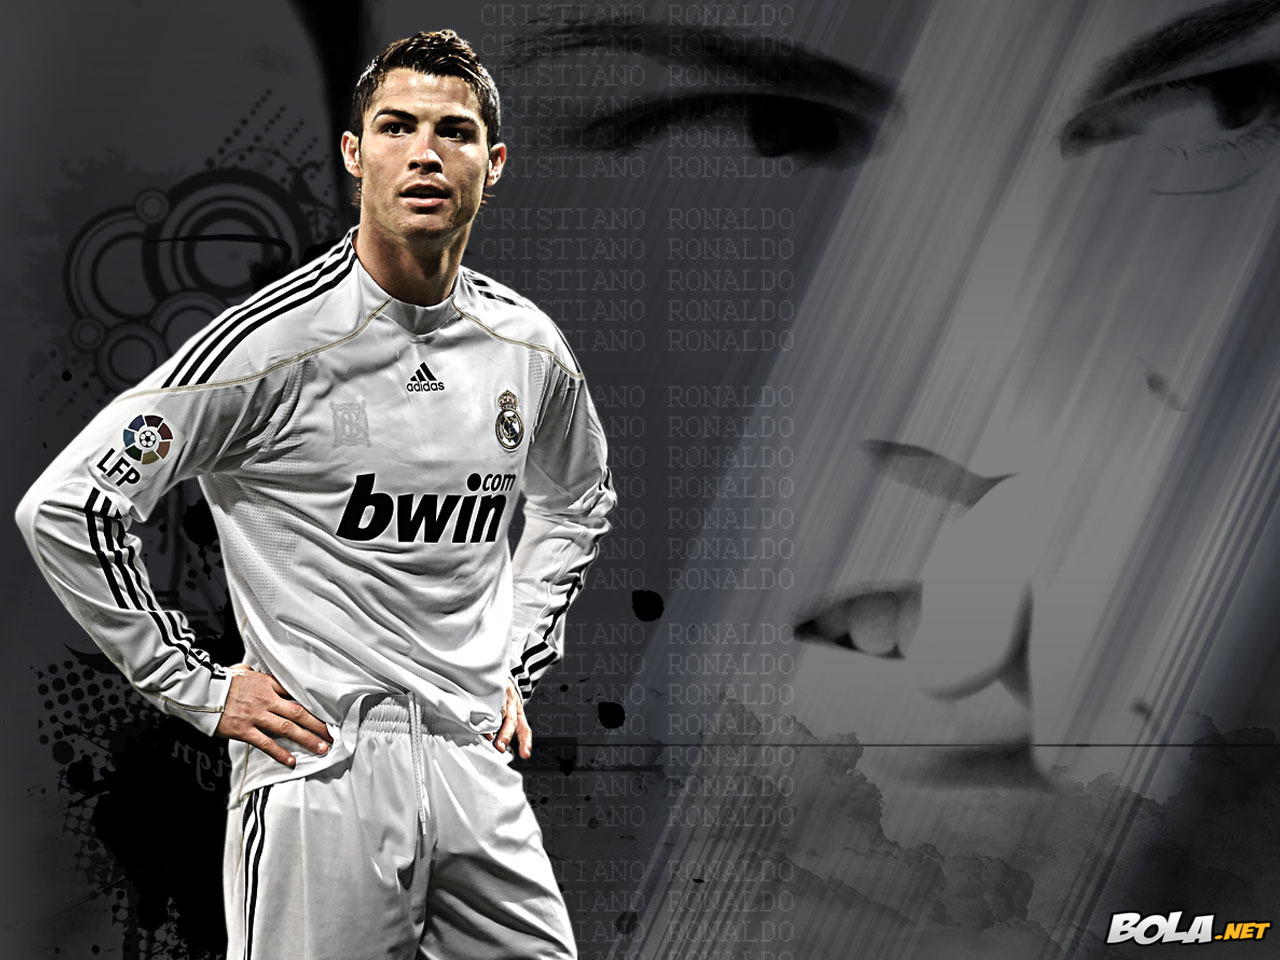 ronaldo+wallpapers+2011+cristiano-ronaldo-wallpaper7.jpg